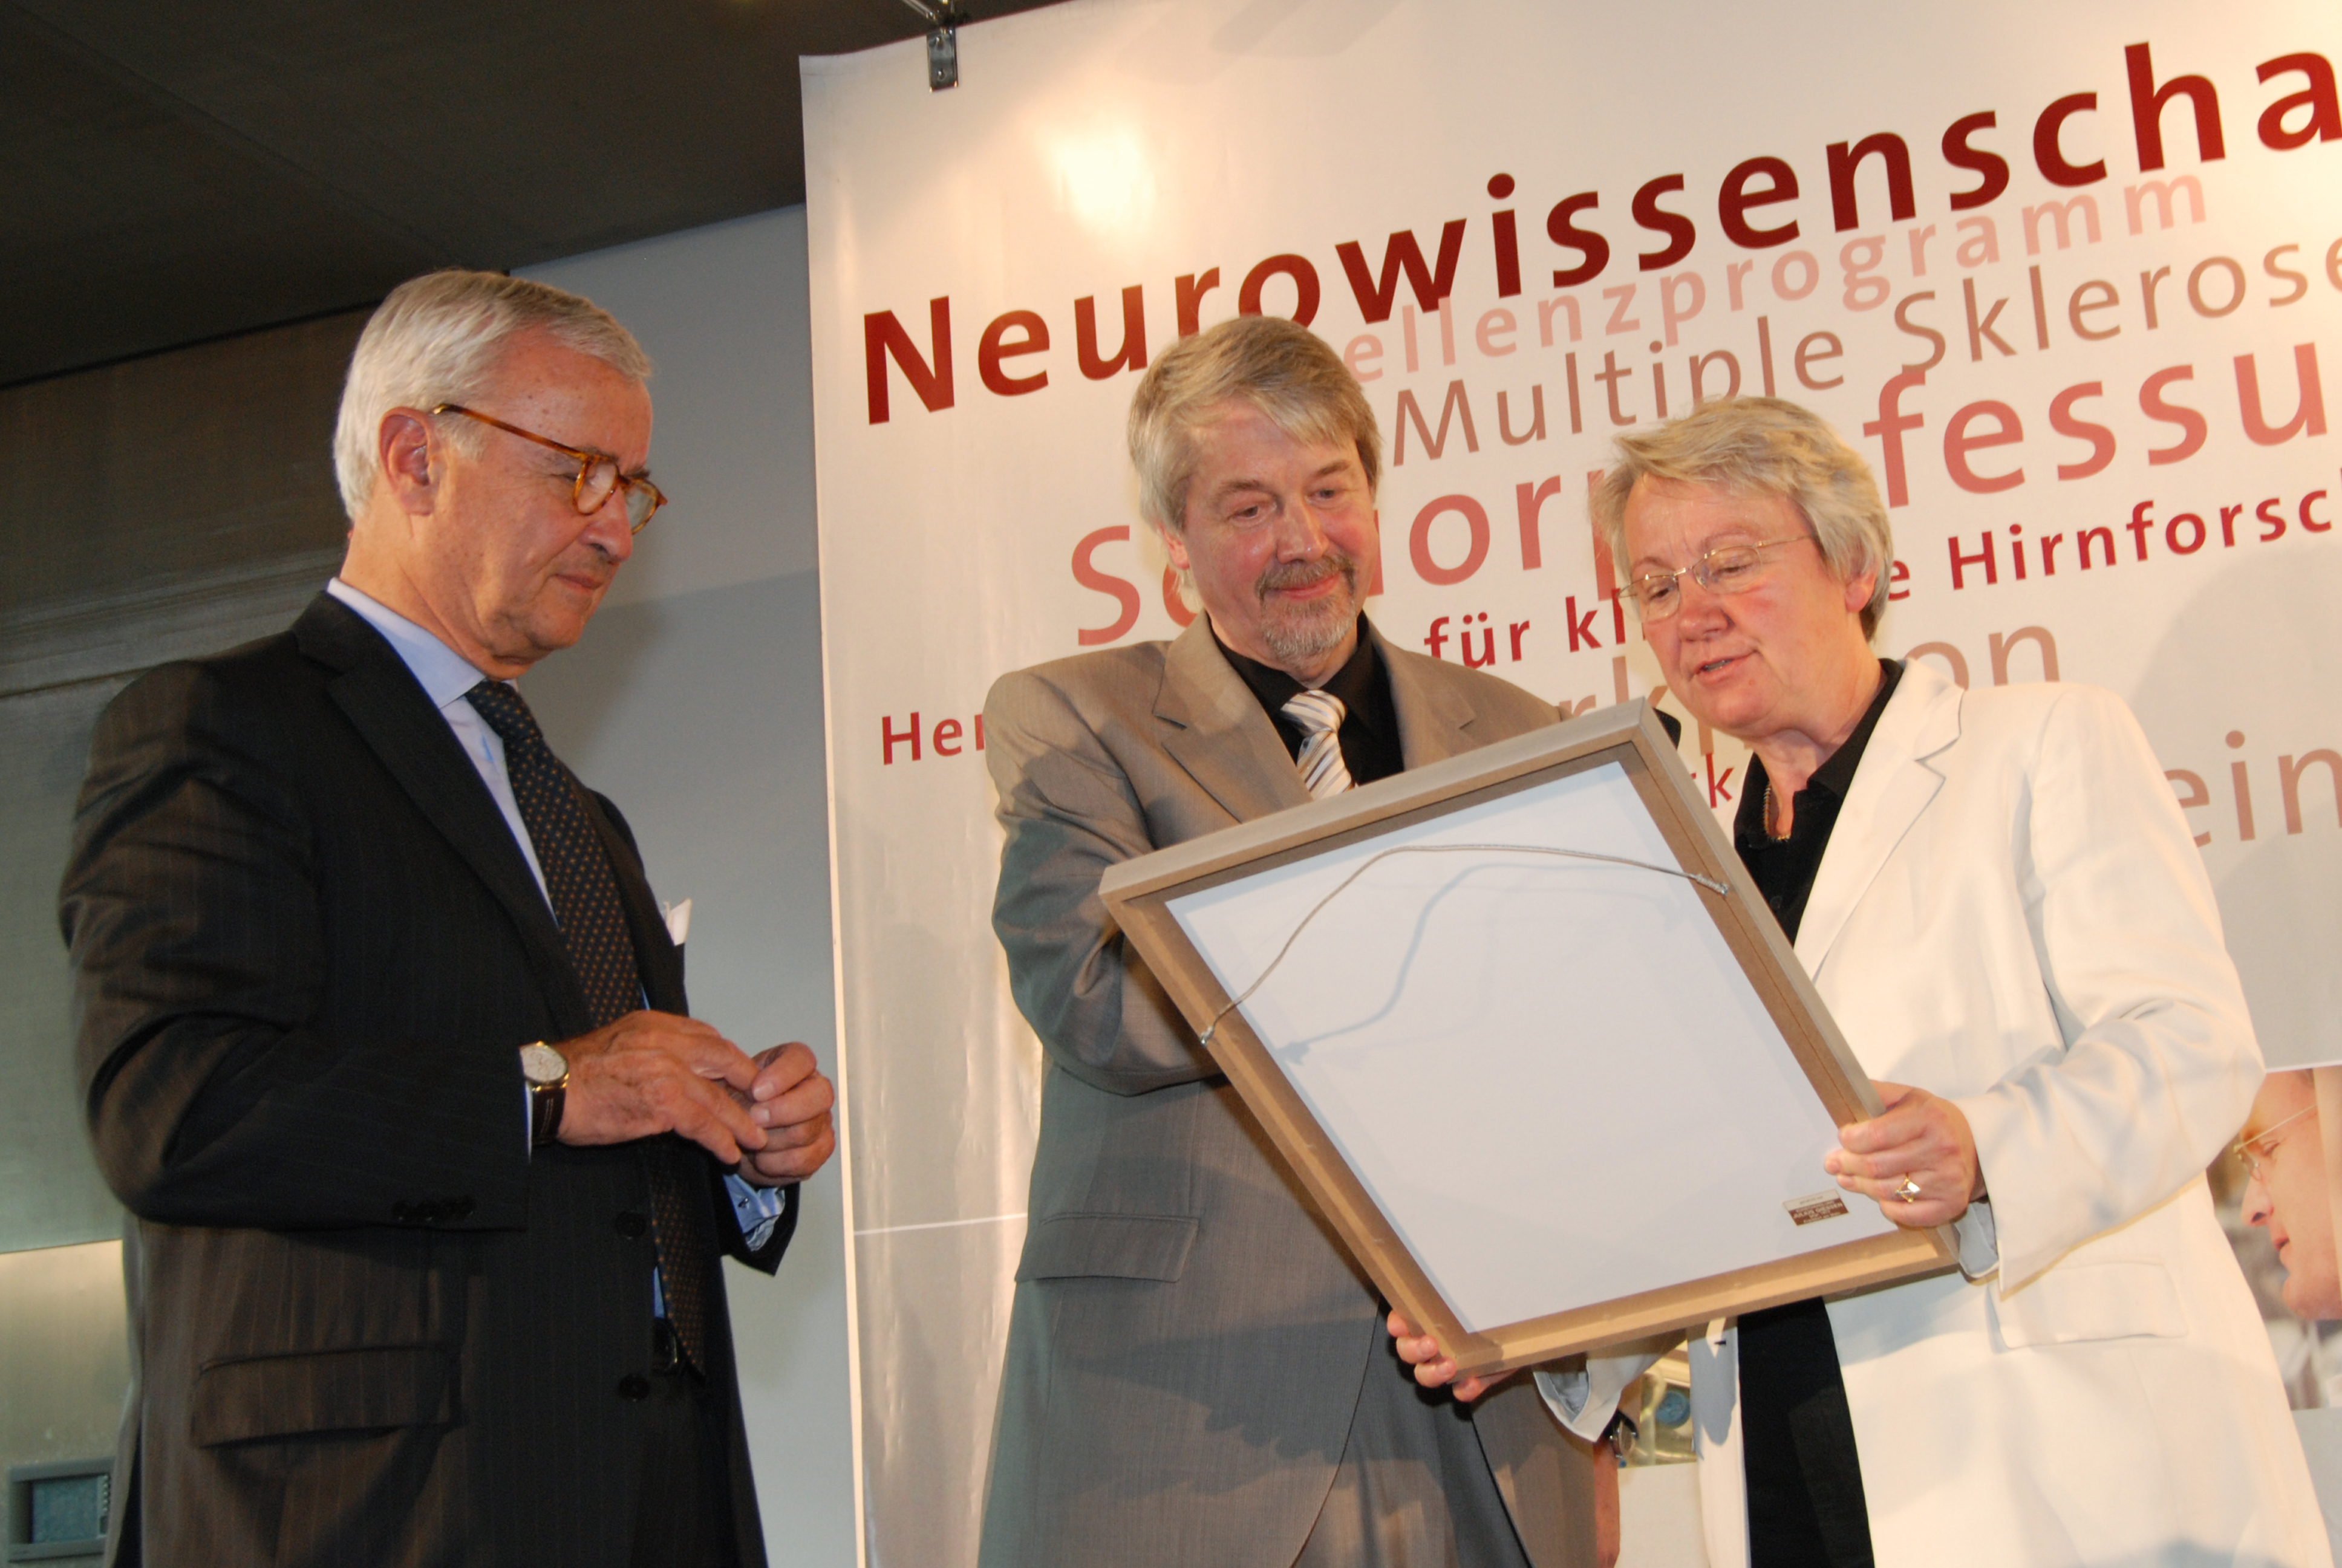 Dr. Schavan, Education and Research Minister of the Federal Republique, awards the 'Senior Research Professor Neurosciences 2008' of the non-proft Hertie Foundation to Dr. Lehmann-Horn.